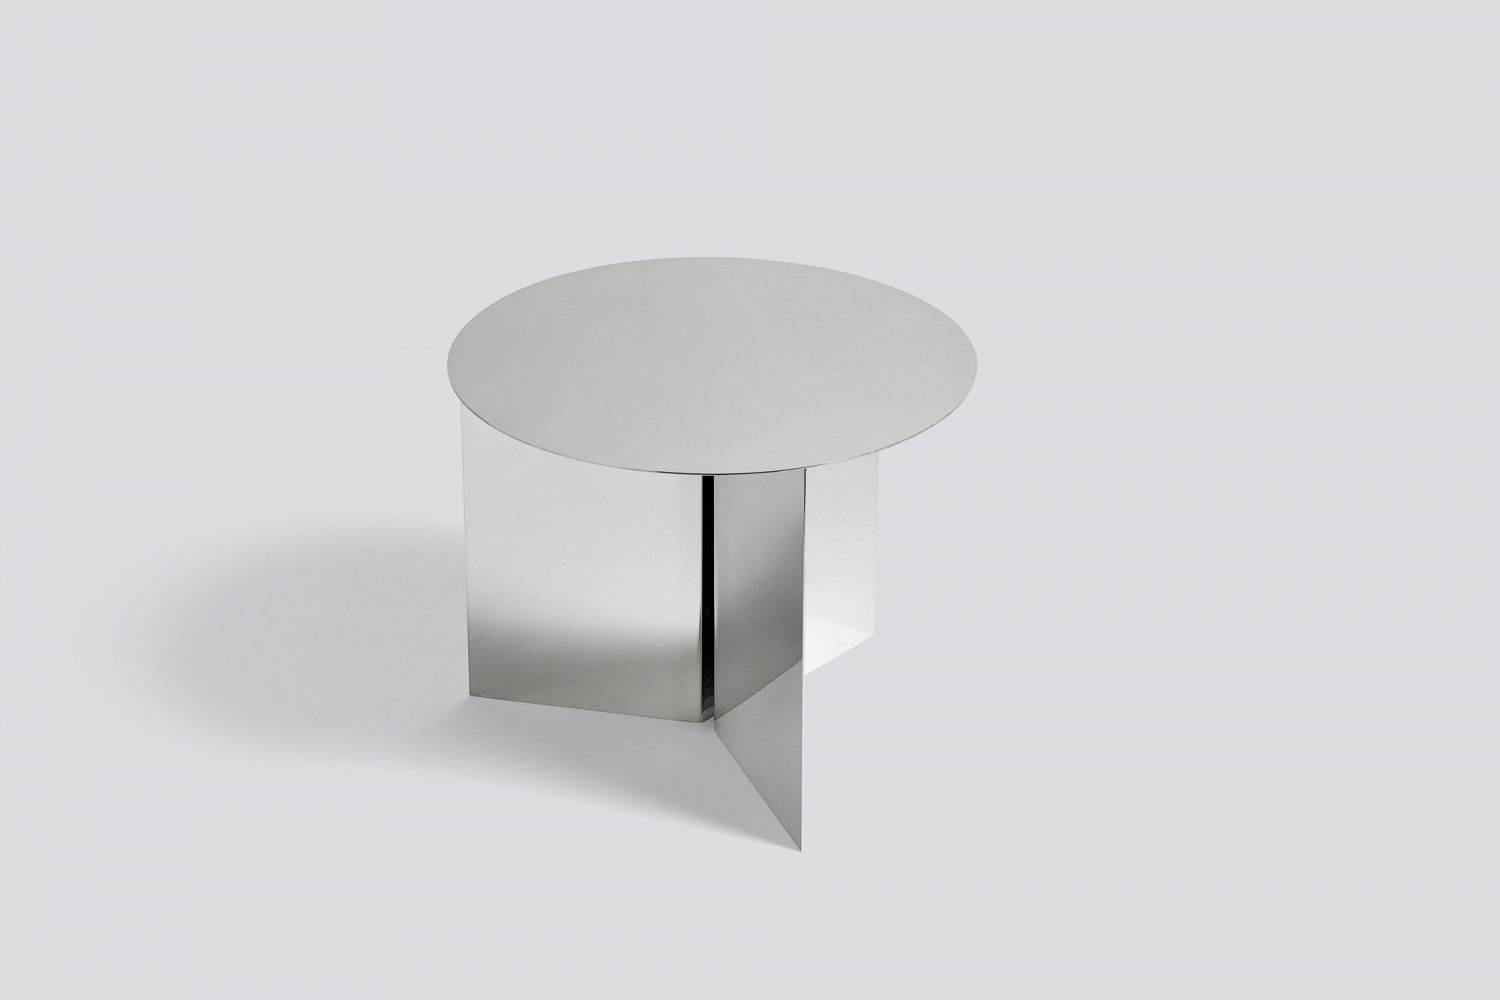 Slit Table Coffee Tables HAYSHOPNO : thumb22001812000x2000 from hayshop.no size 1500 x 1000 jpeg 380kB